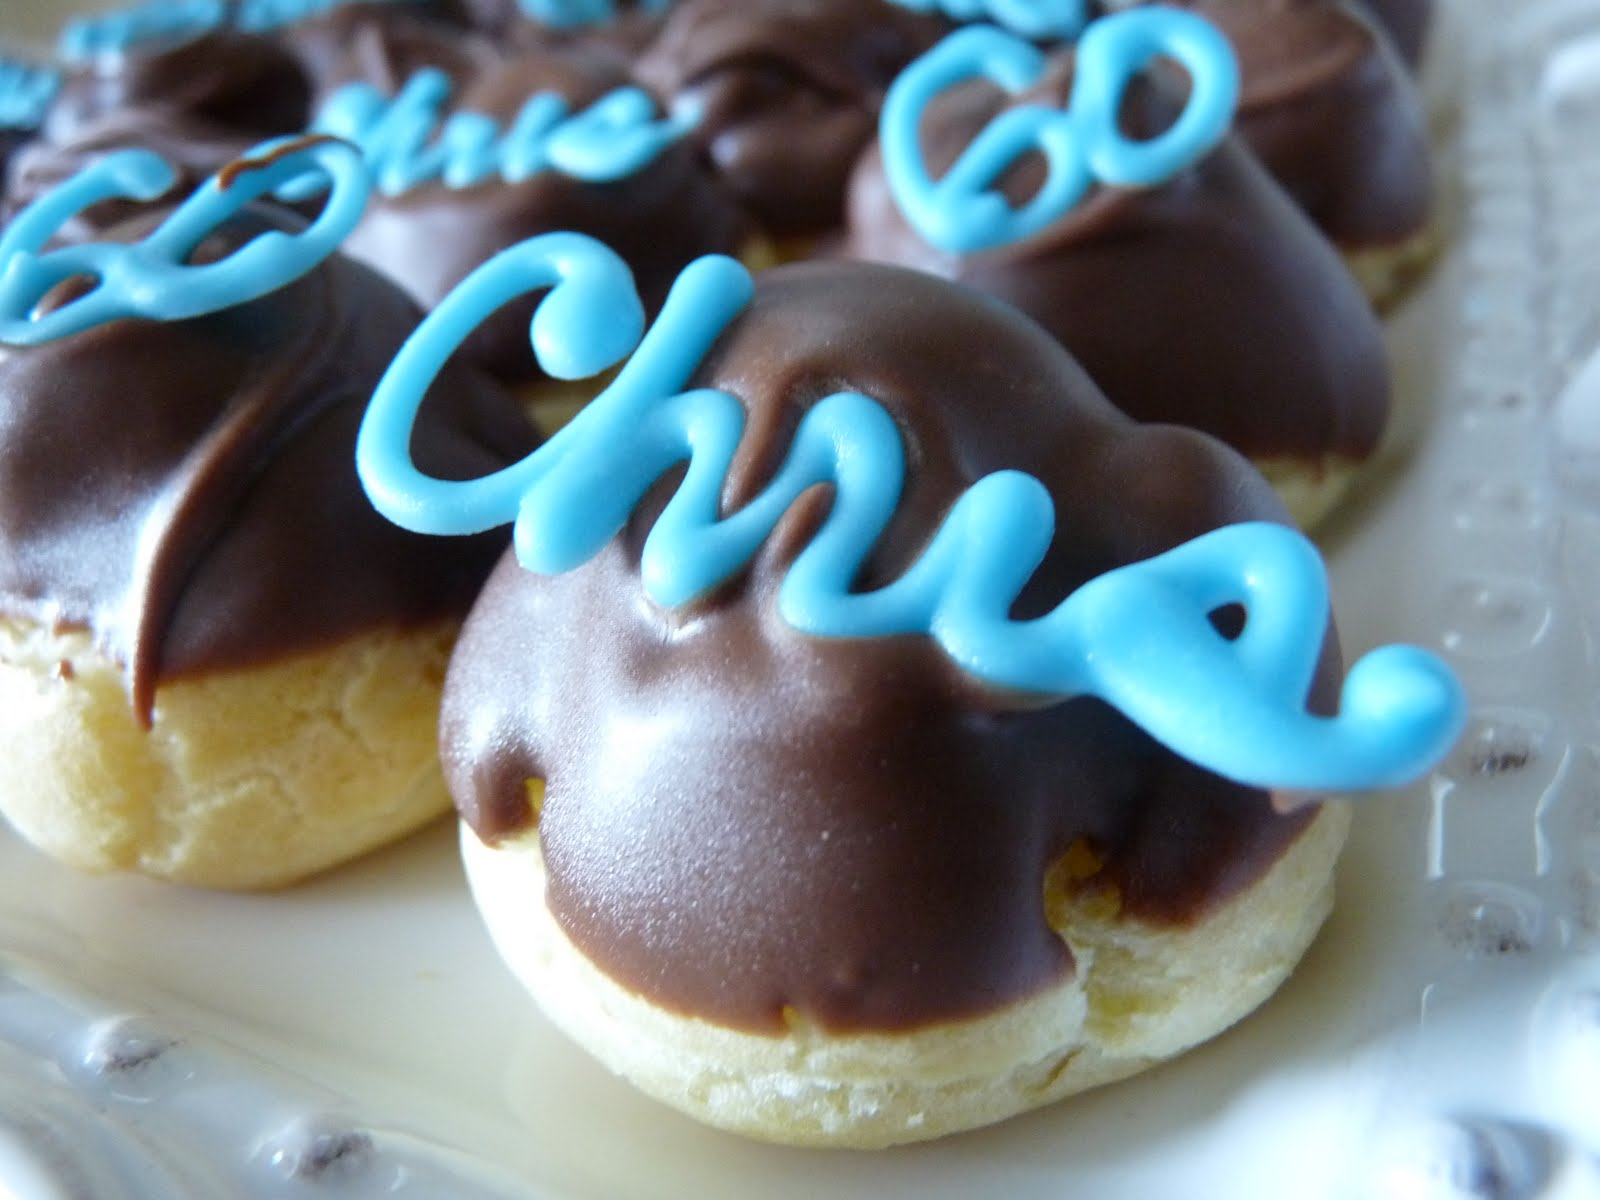 Confections22 - Cream Puffs Chris.JPG